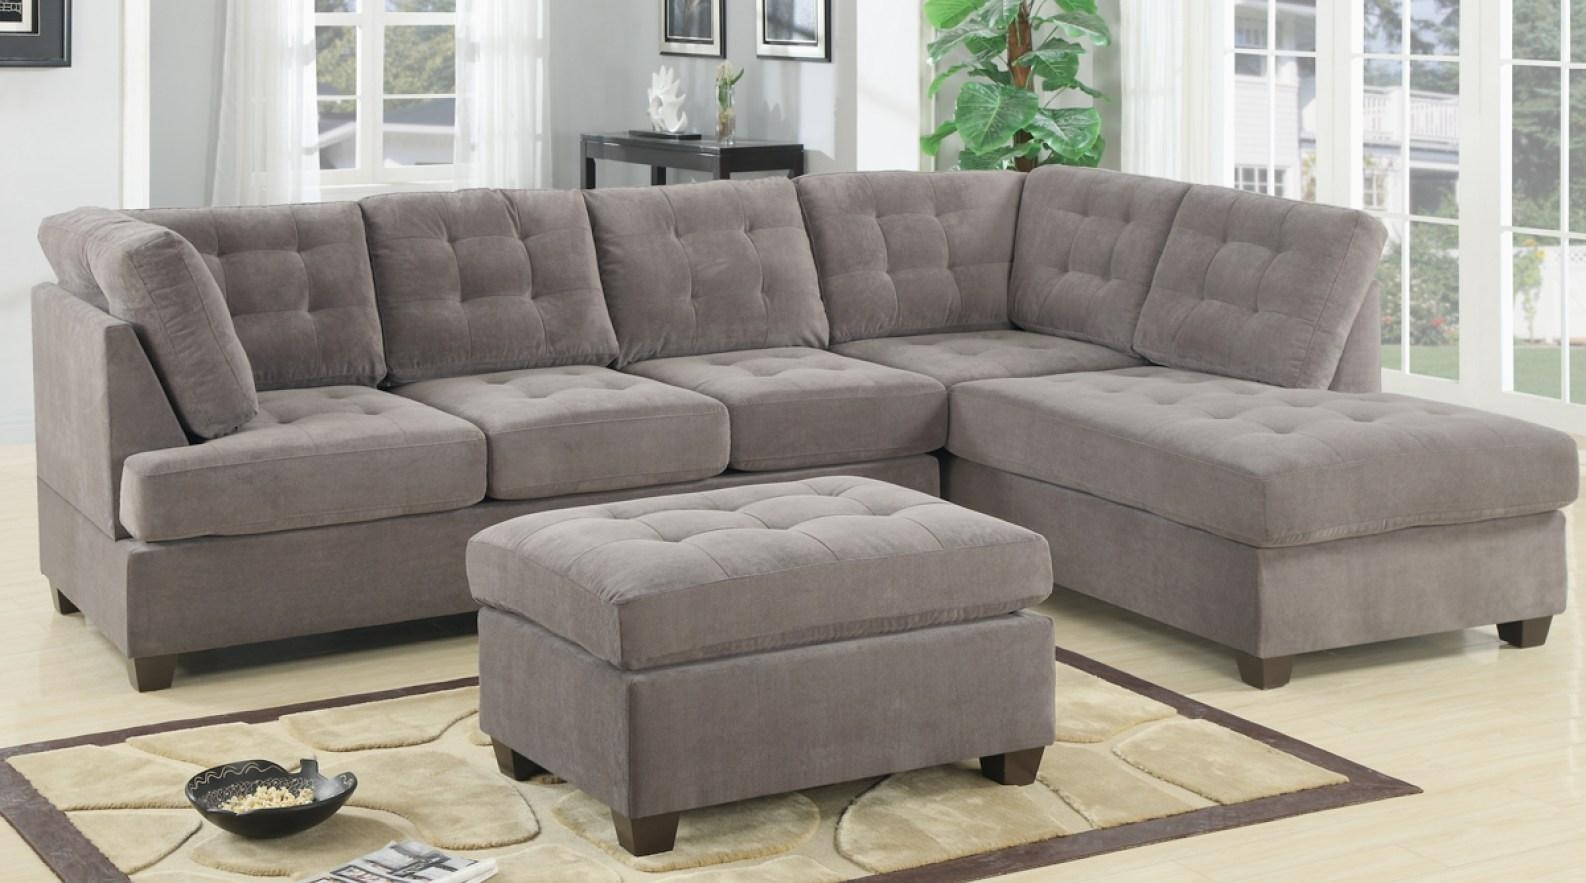 Horrifying Ideas Sofasdesign Epic Sectional Sofa Dimensions With Regard To Sectional Small Space (Image 13 of 20)